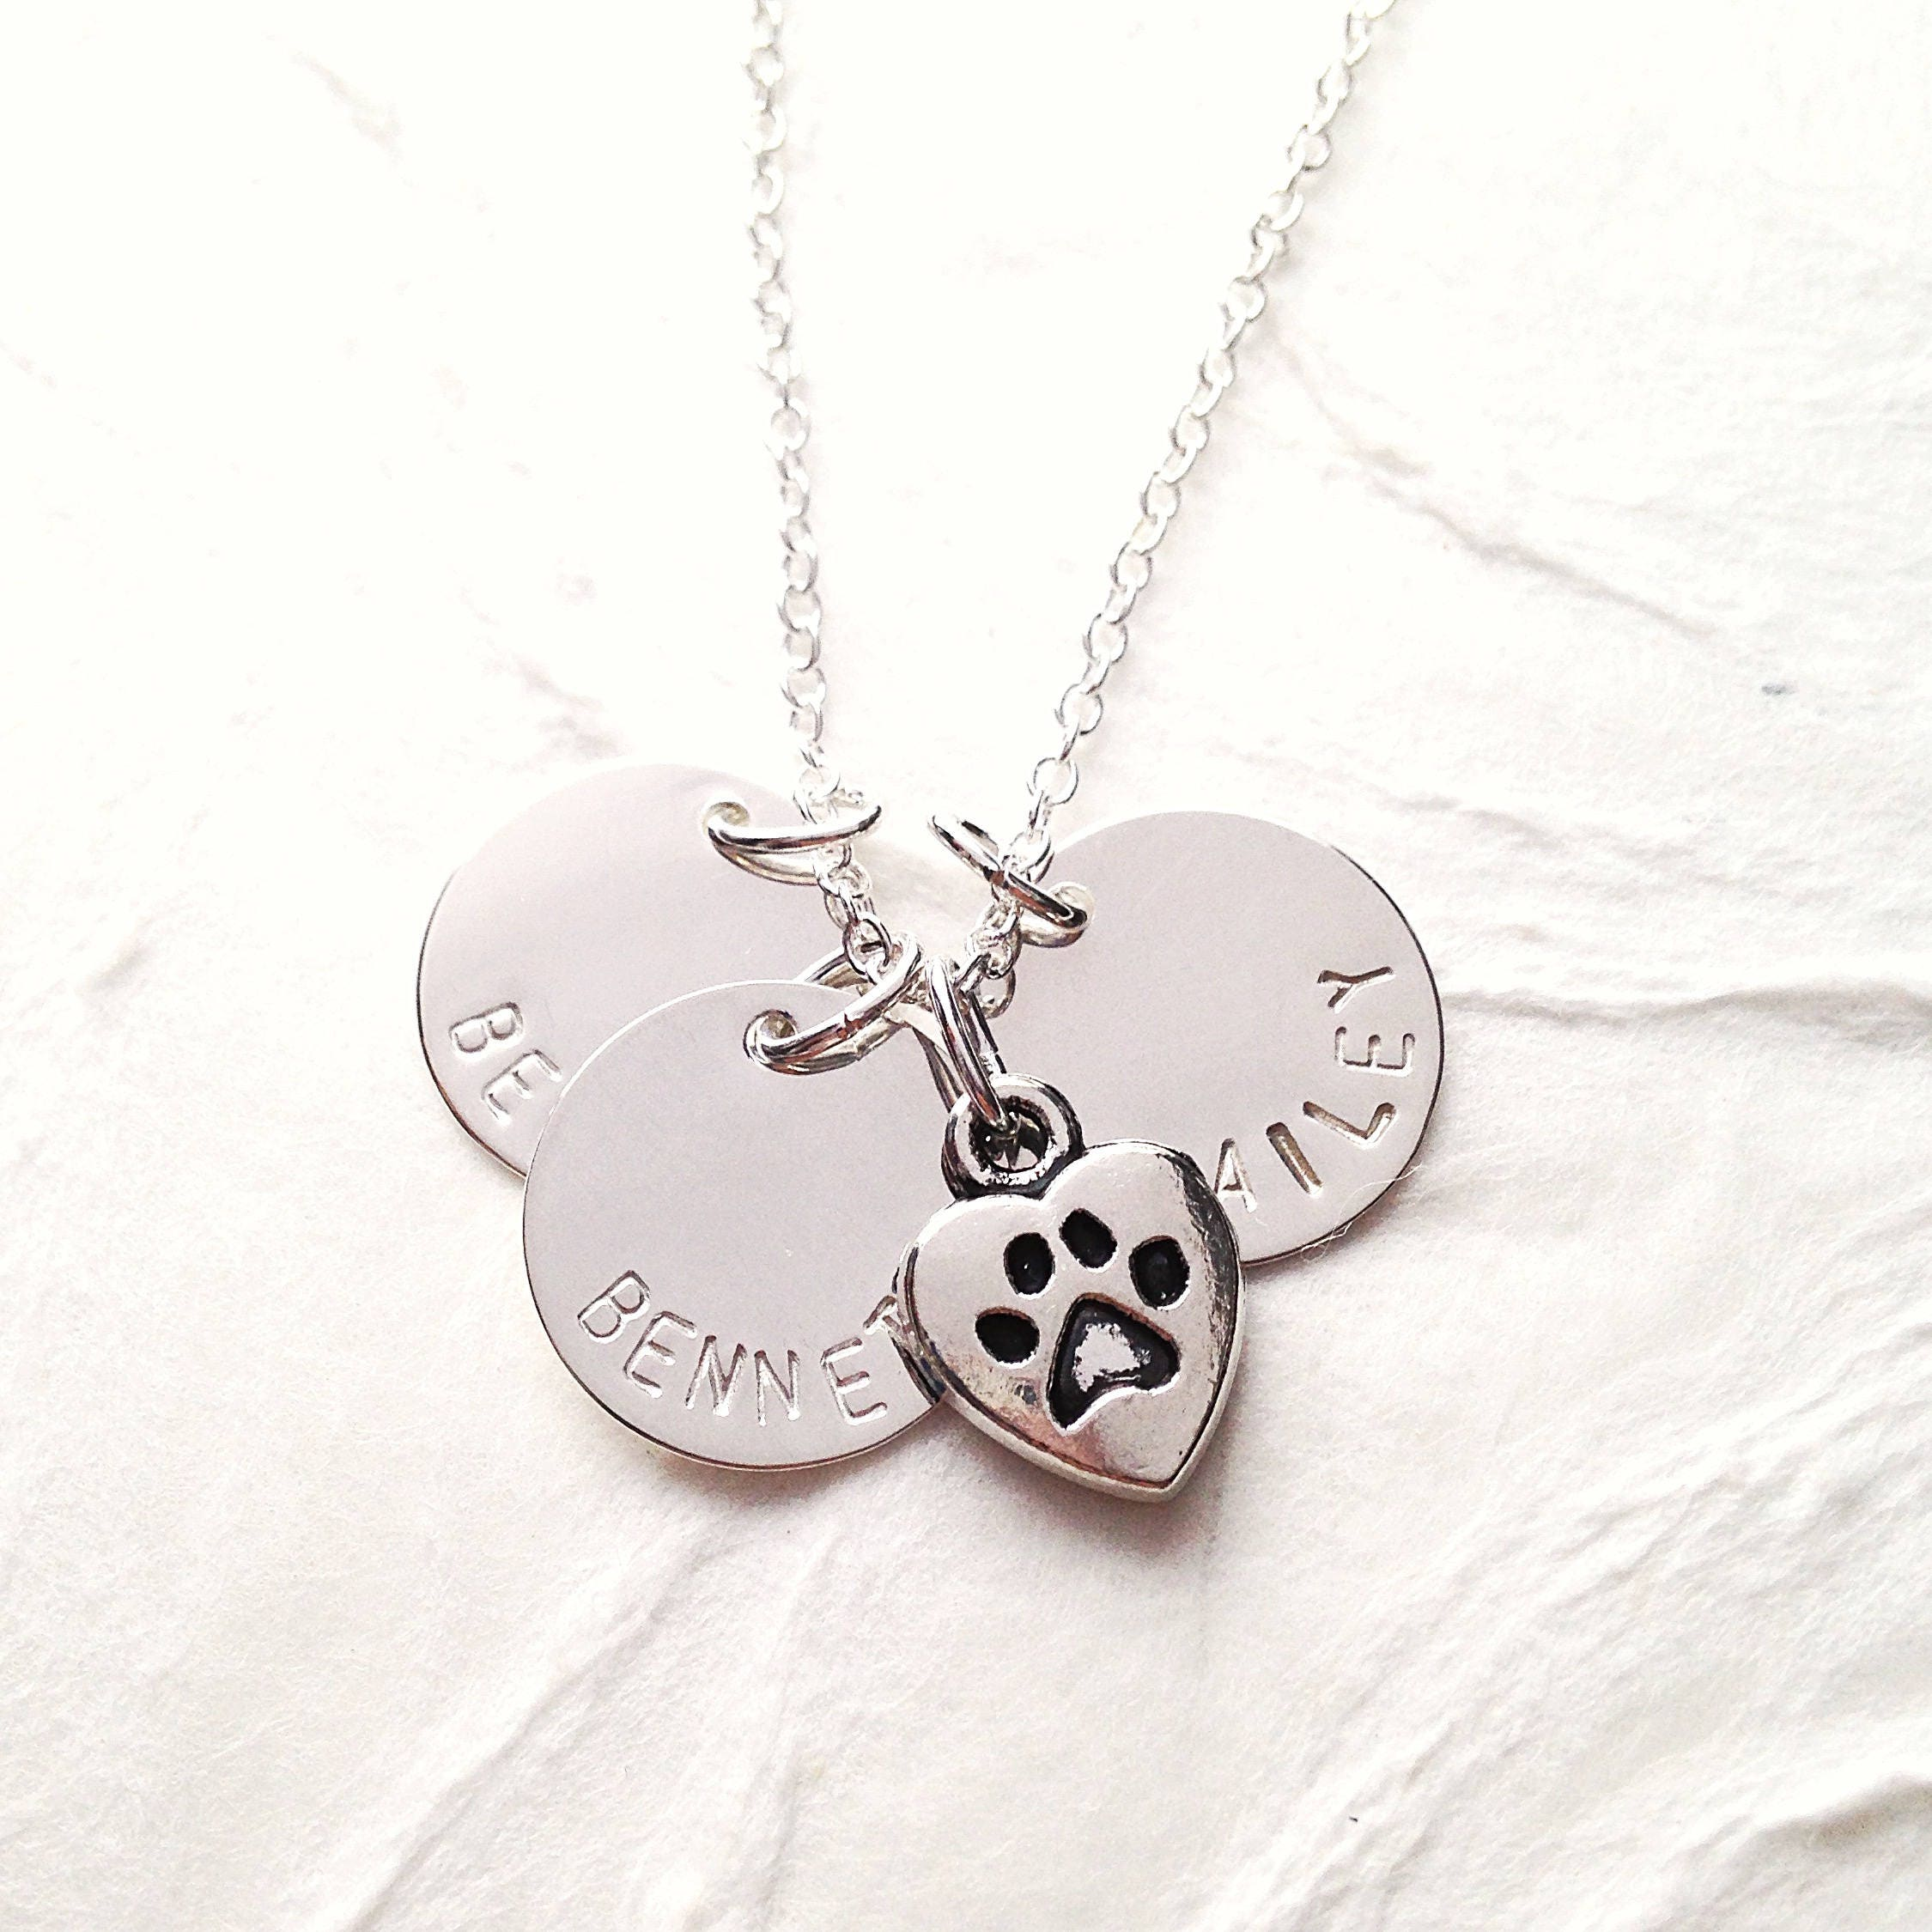 crownedclay by necklace gray on polymer clay lover kawaii etsy pendant cat gift jewelry pin